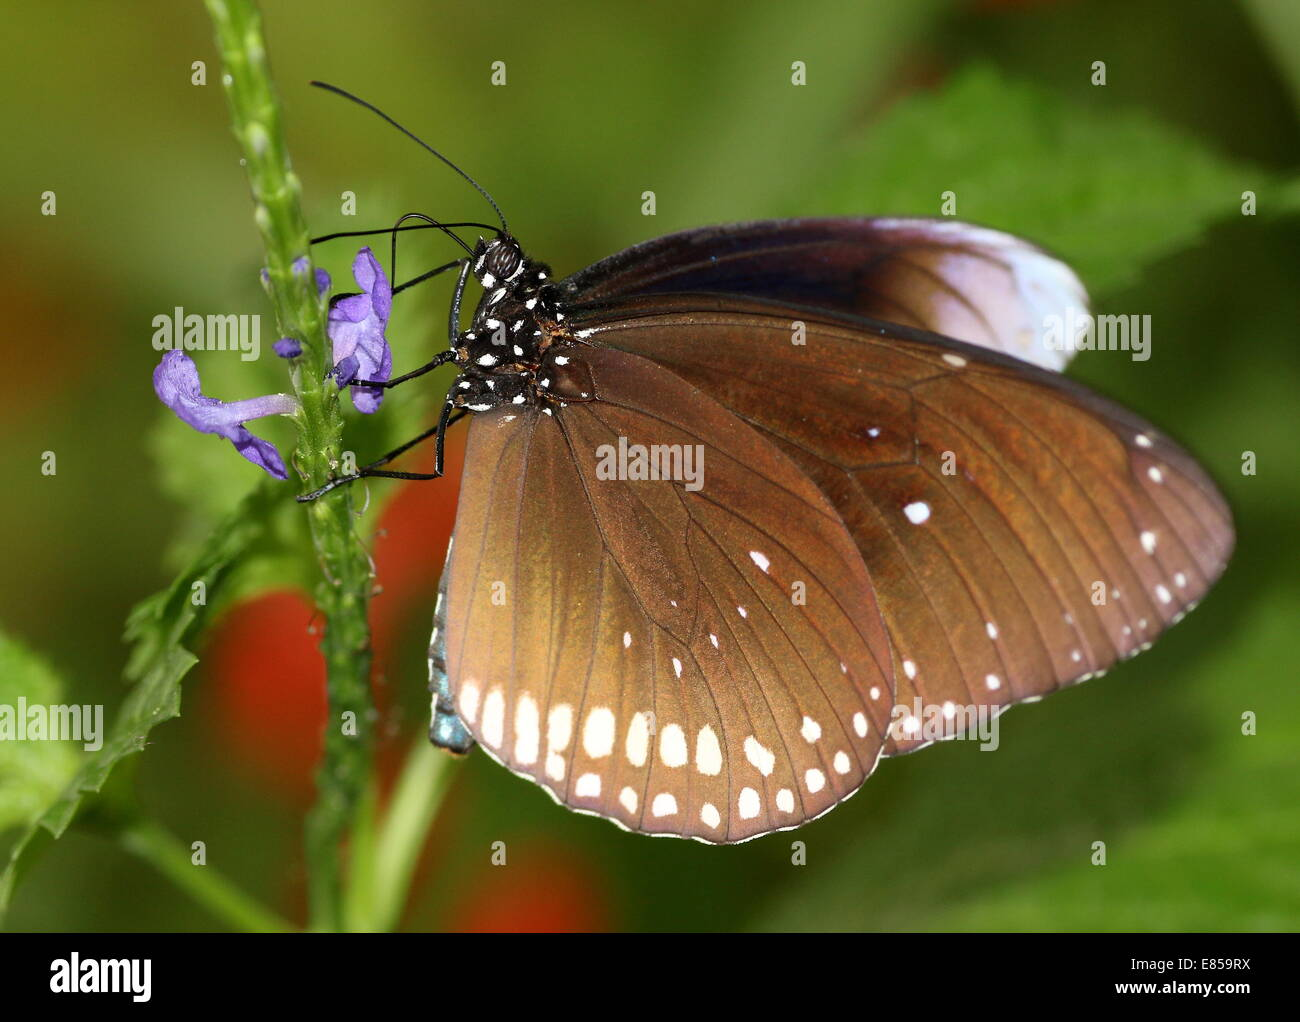 Common Crow butterfly a.k.a. Common Indian or Australian Crow (Euploea core) foraging on a blue flower - Stock Image